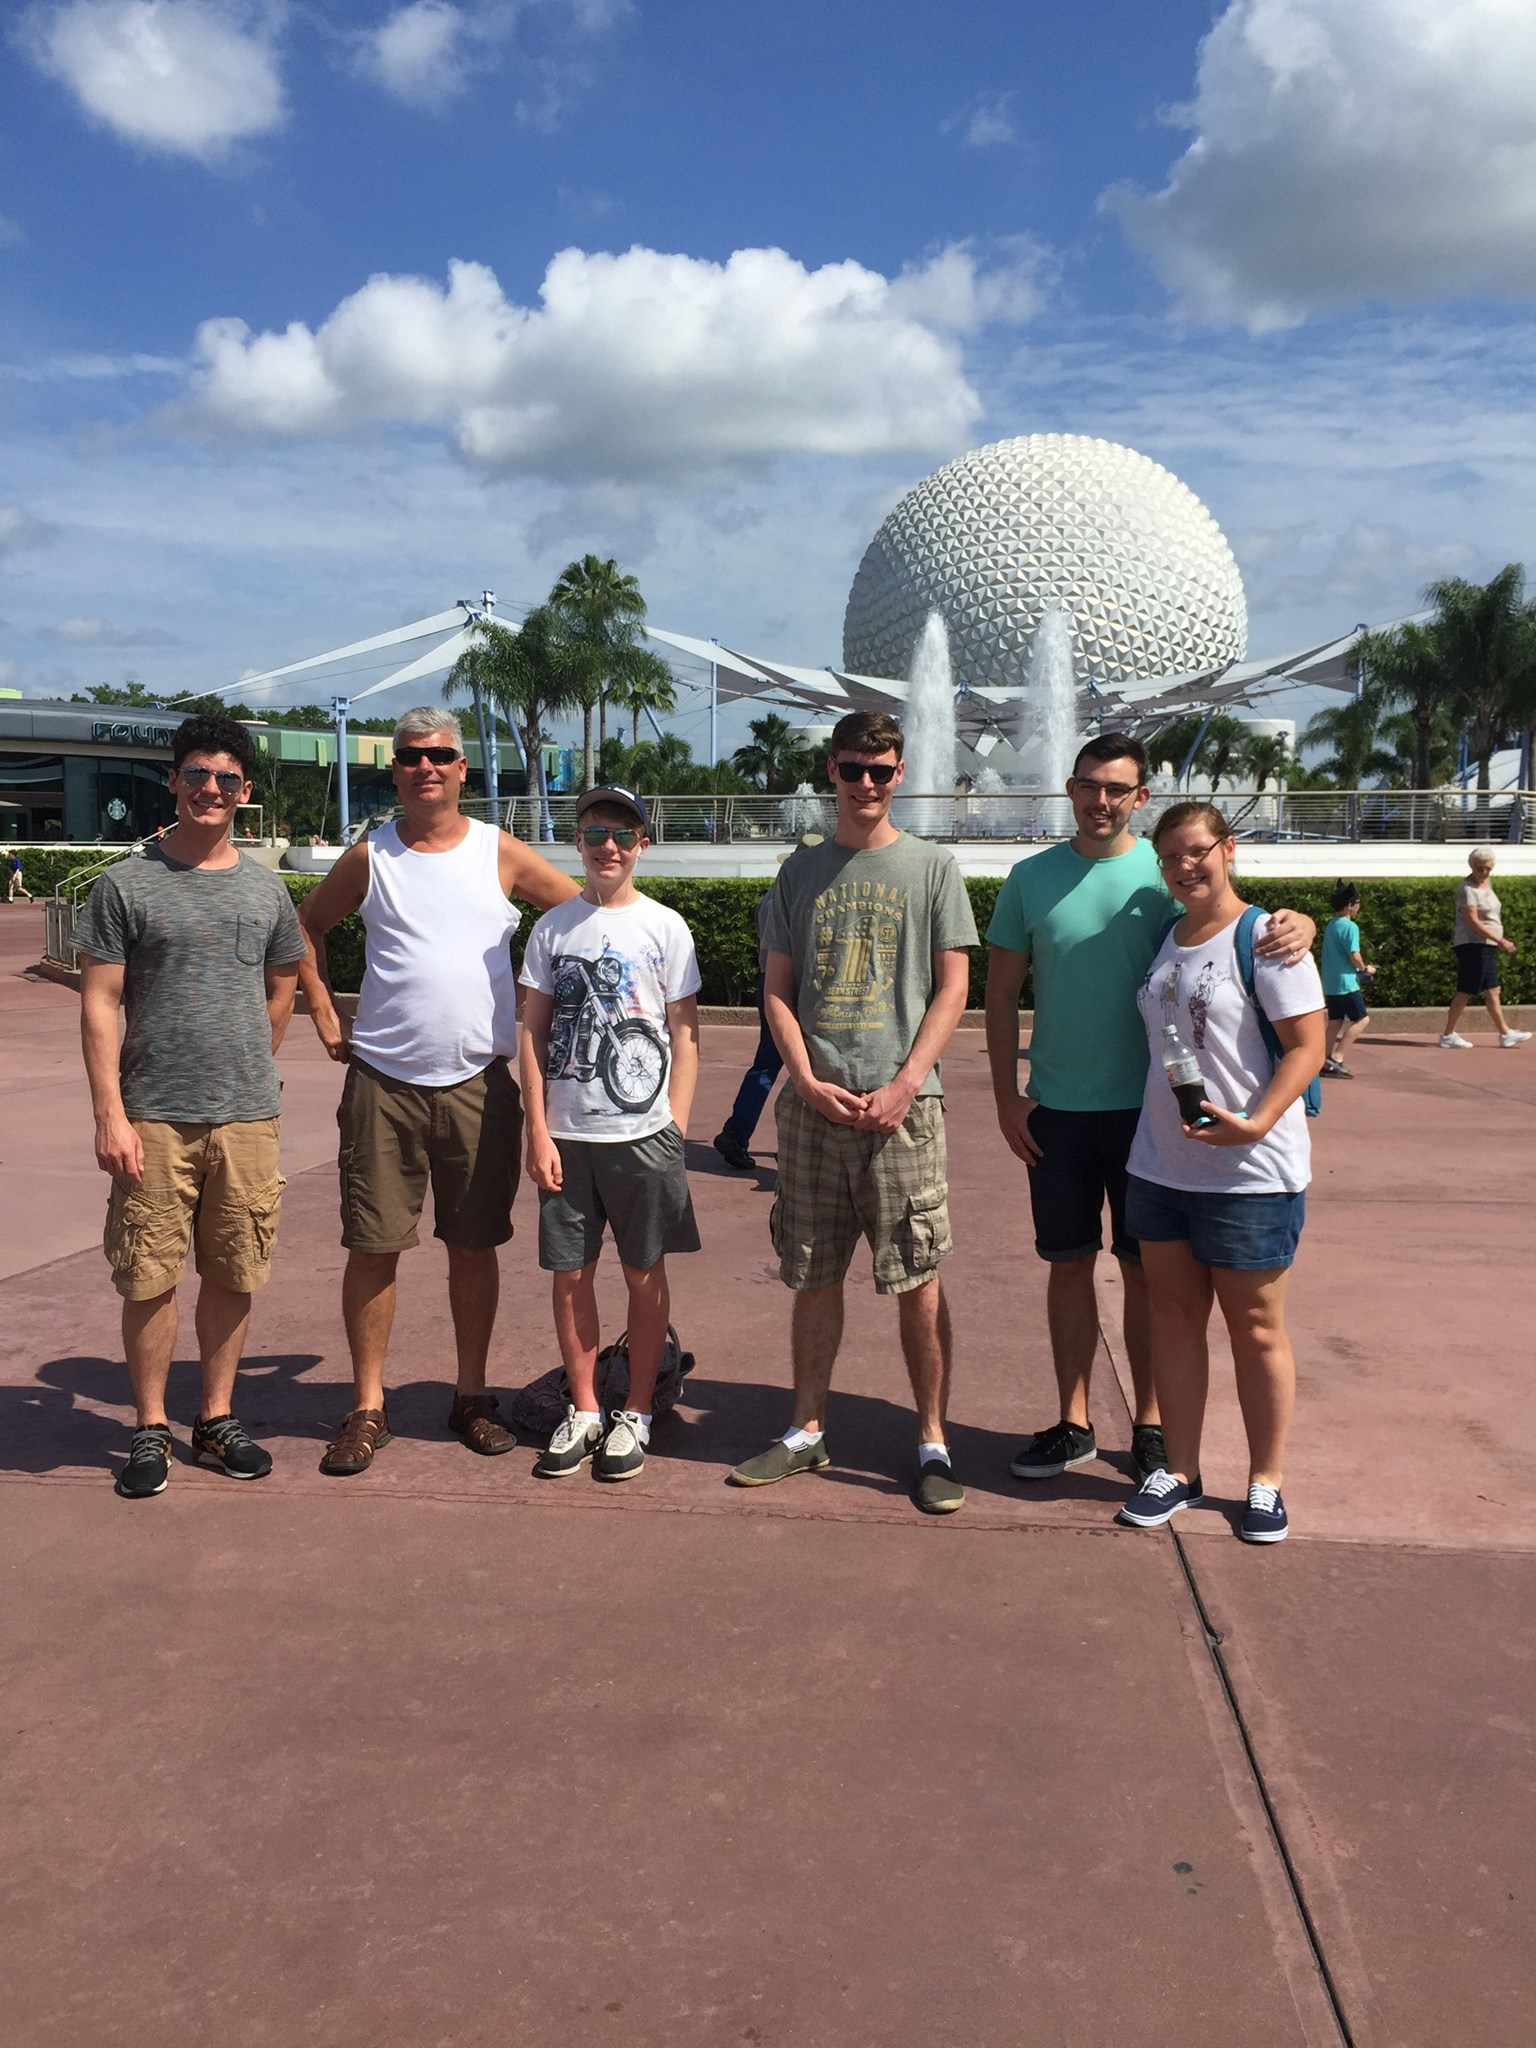 Epcot, Florida - Apr 15